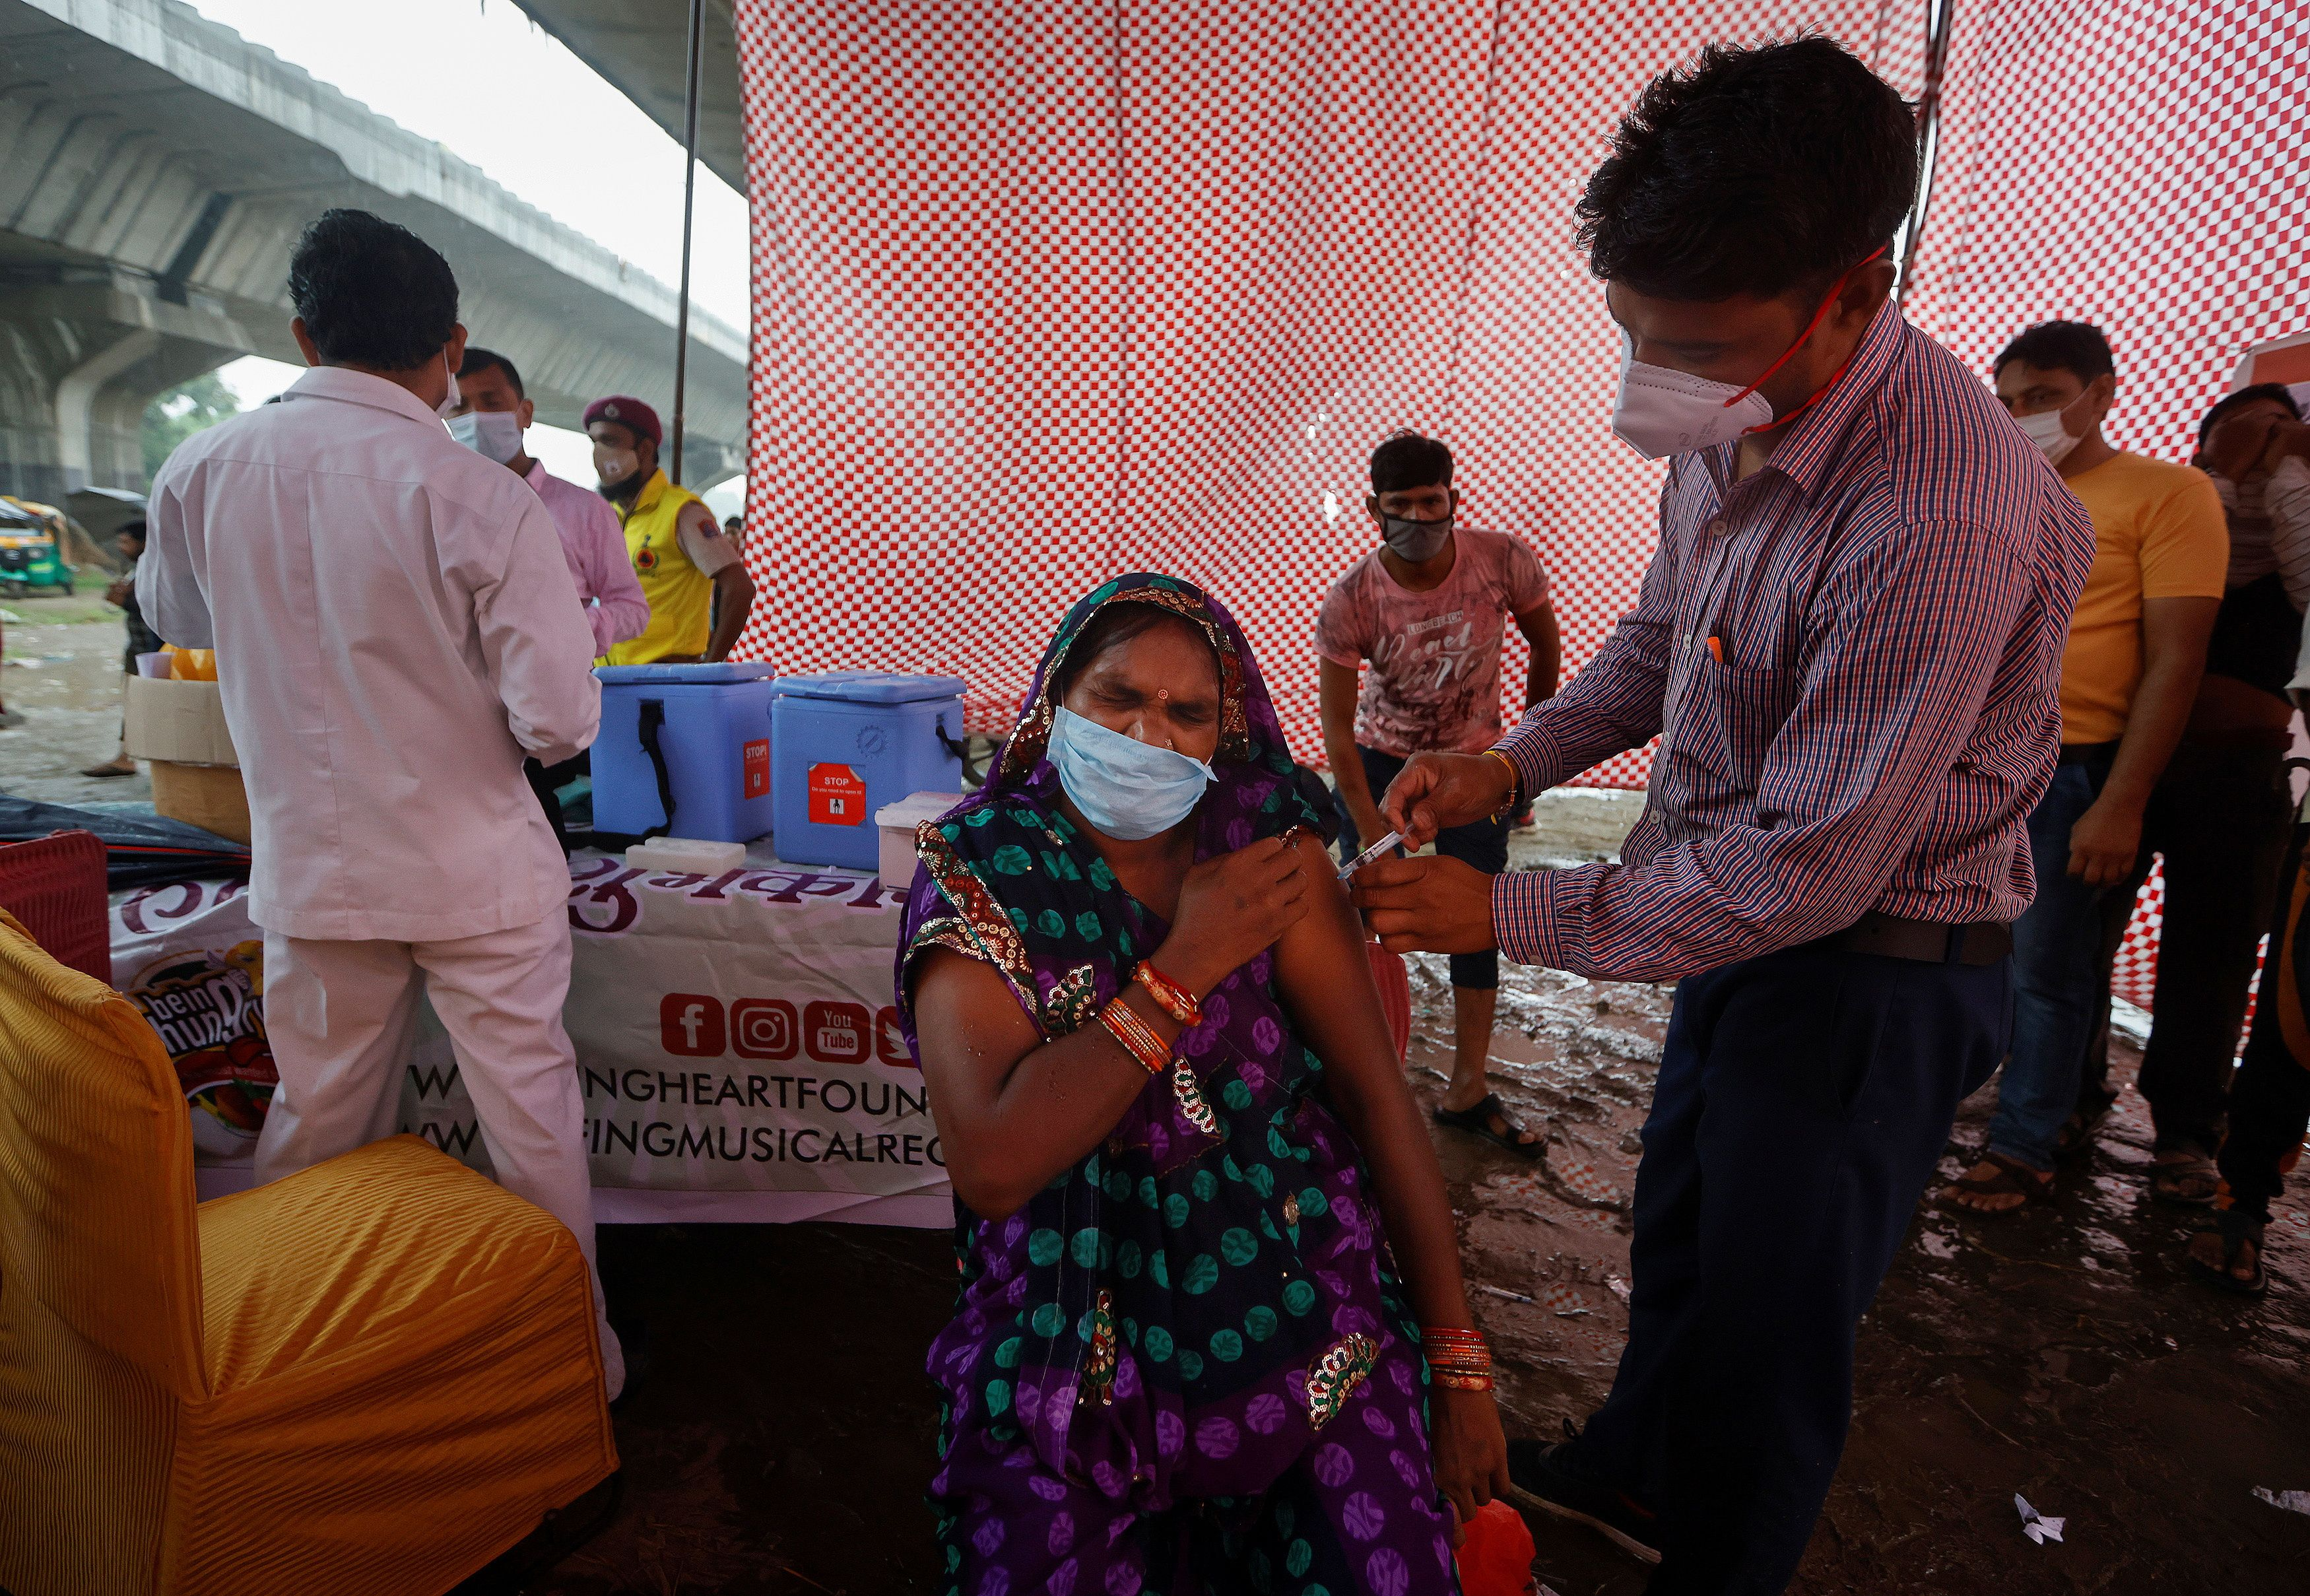 A woman receives a dose of COVAXIN coronavirus disease (COVID-19) vaccine manufactured by Bharat Biotech, during a vaccination drive organised by SEEDS, an NGO which normally specialise in providing relief after floods and other natural disasters, at an under-construction flyover in New Delhi, India, August 31, 2021. REUTERS/Adnan Abidi